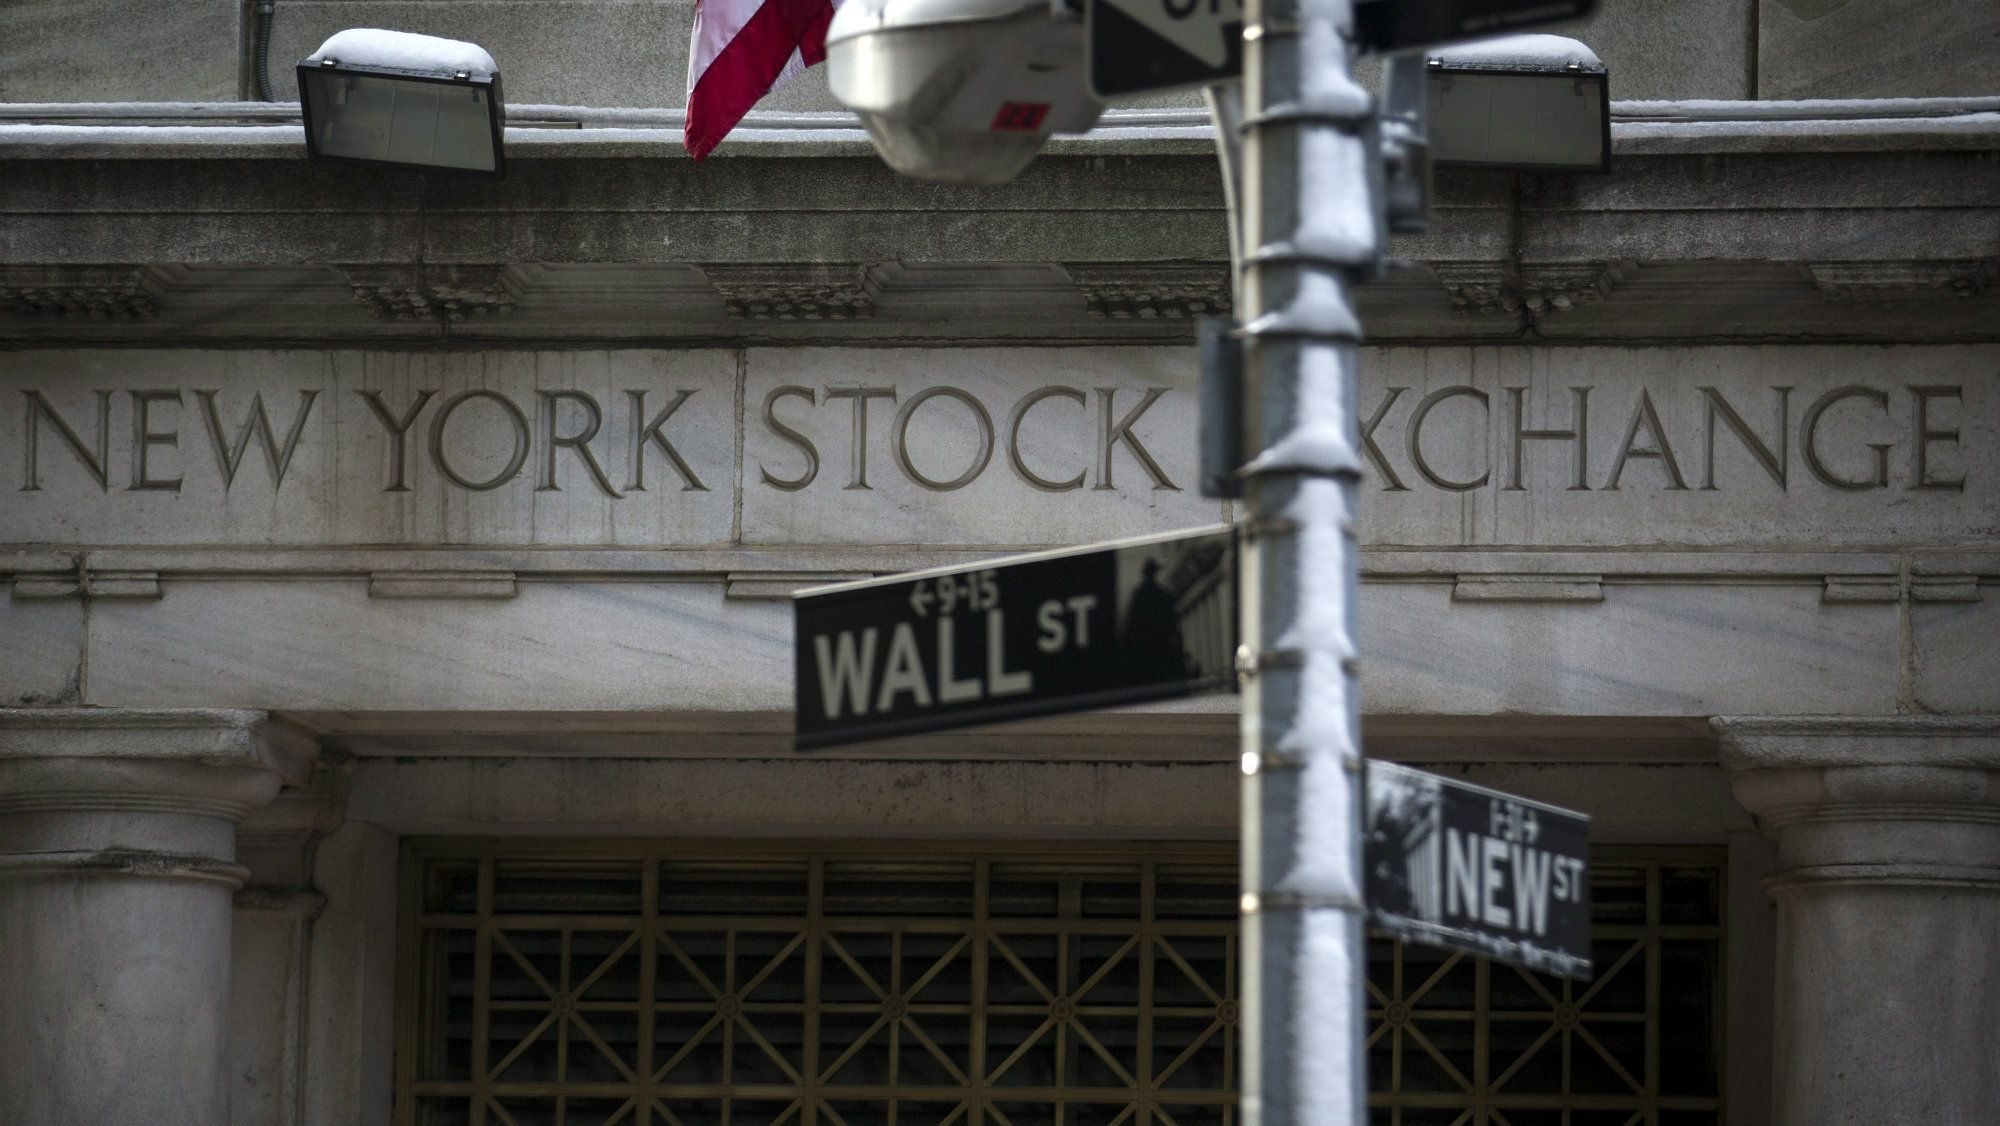 The Wall St. sign is seen outside the door to the New York Stock Exchange in New York's financial district.